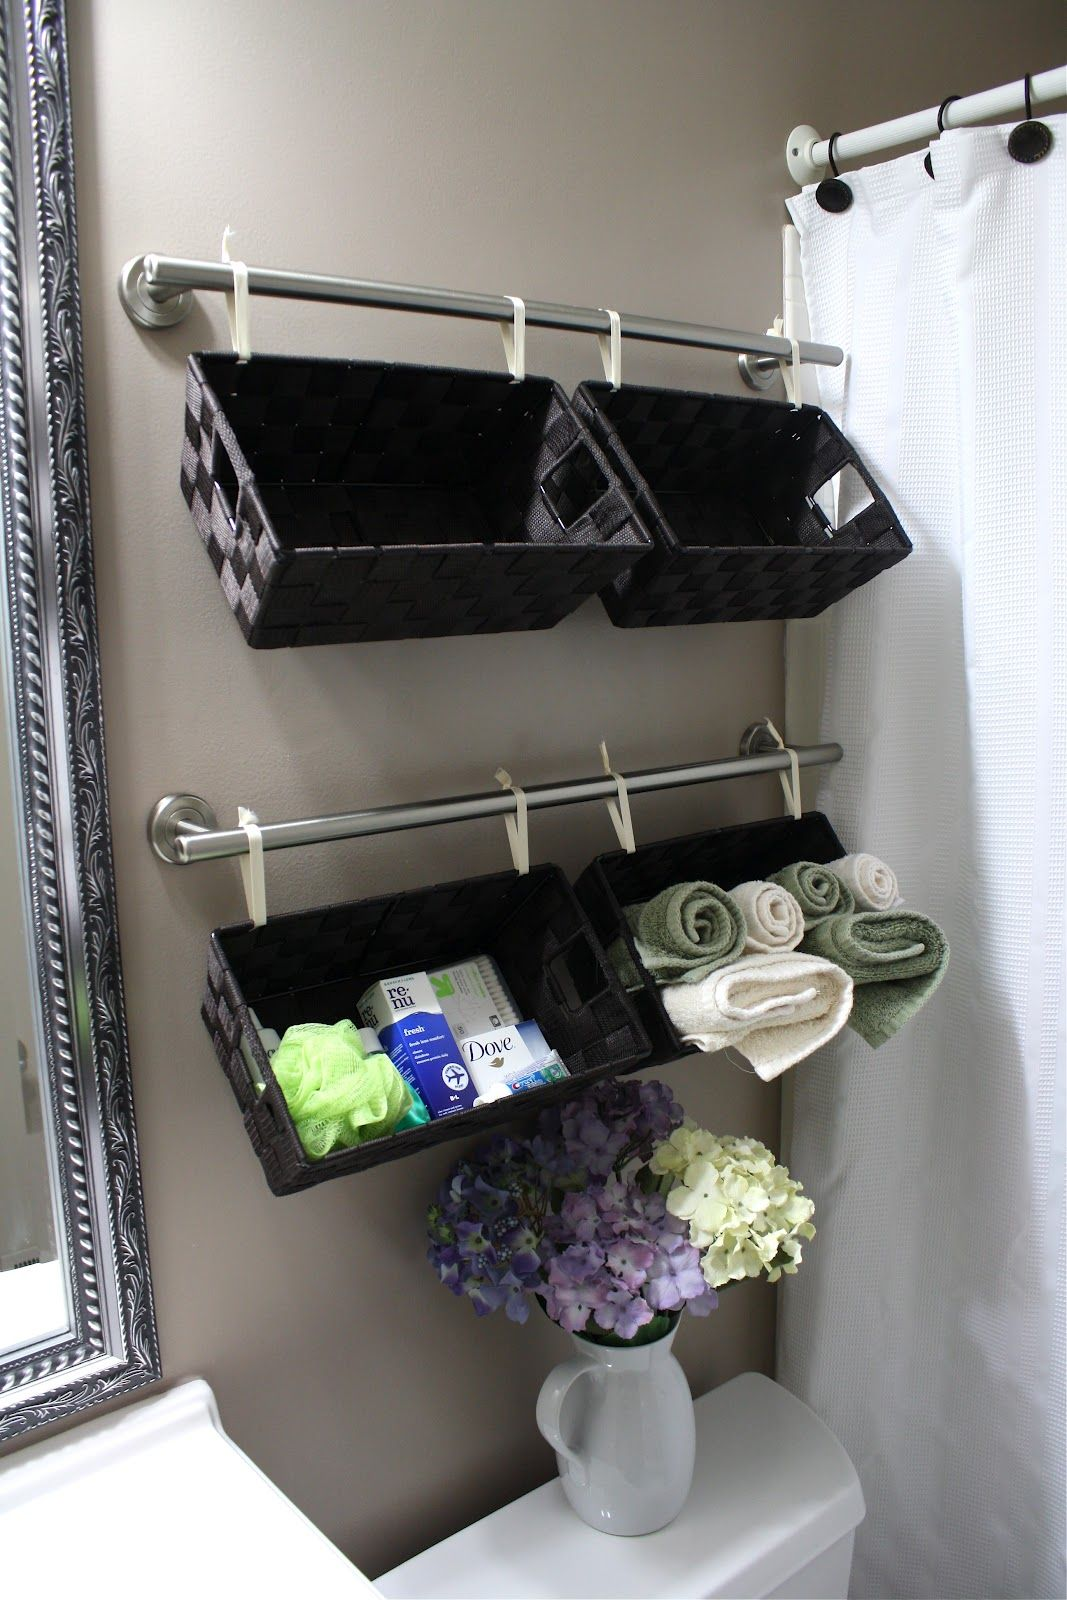 Cool Idea When There S Little Counter Space Maybe Use Shower Curtain Rings Instead Of Zip Ties Bathroom Basket Storage Diy Bathroom Home Diy